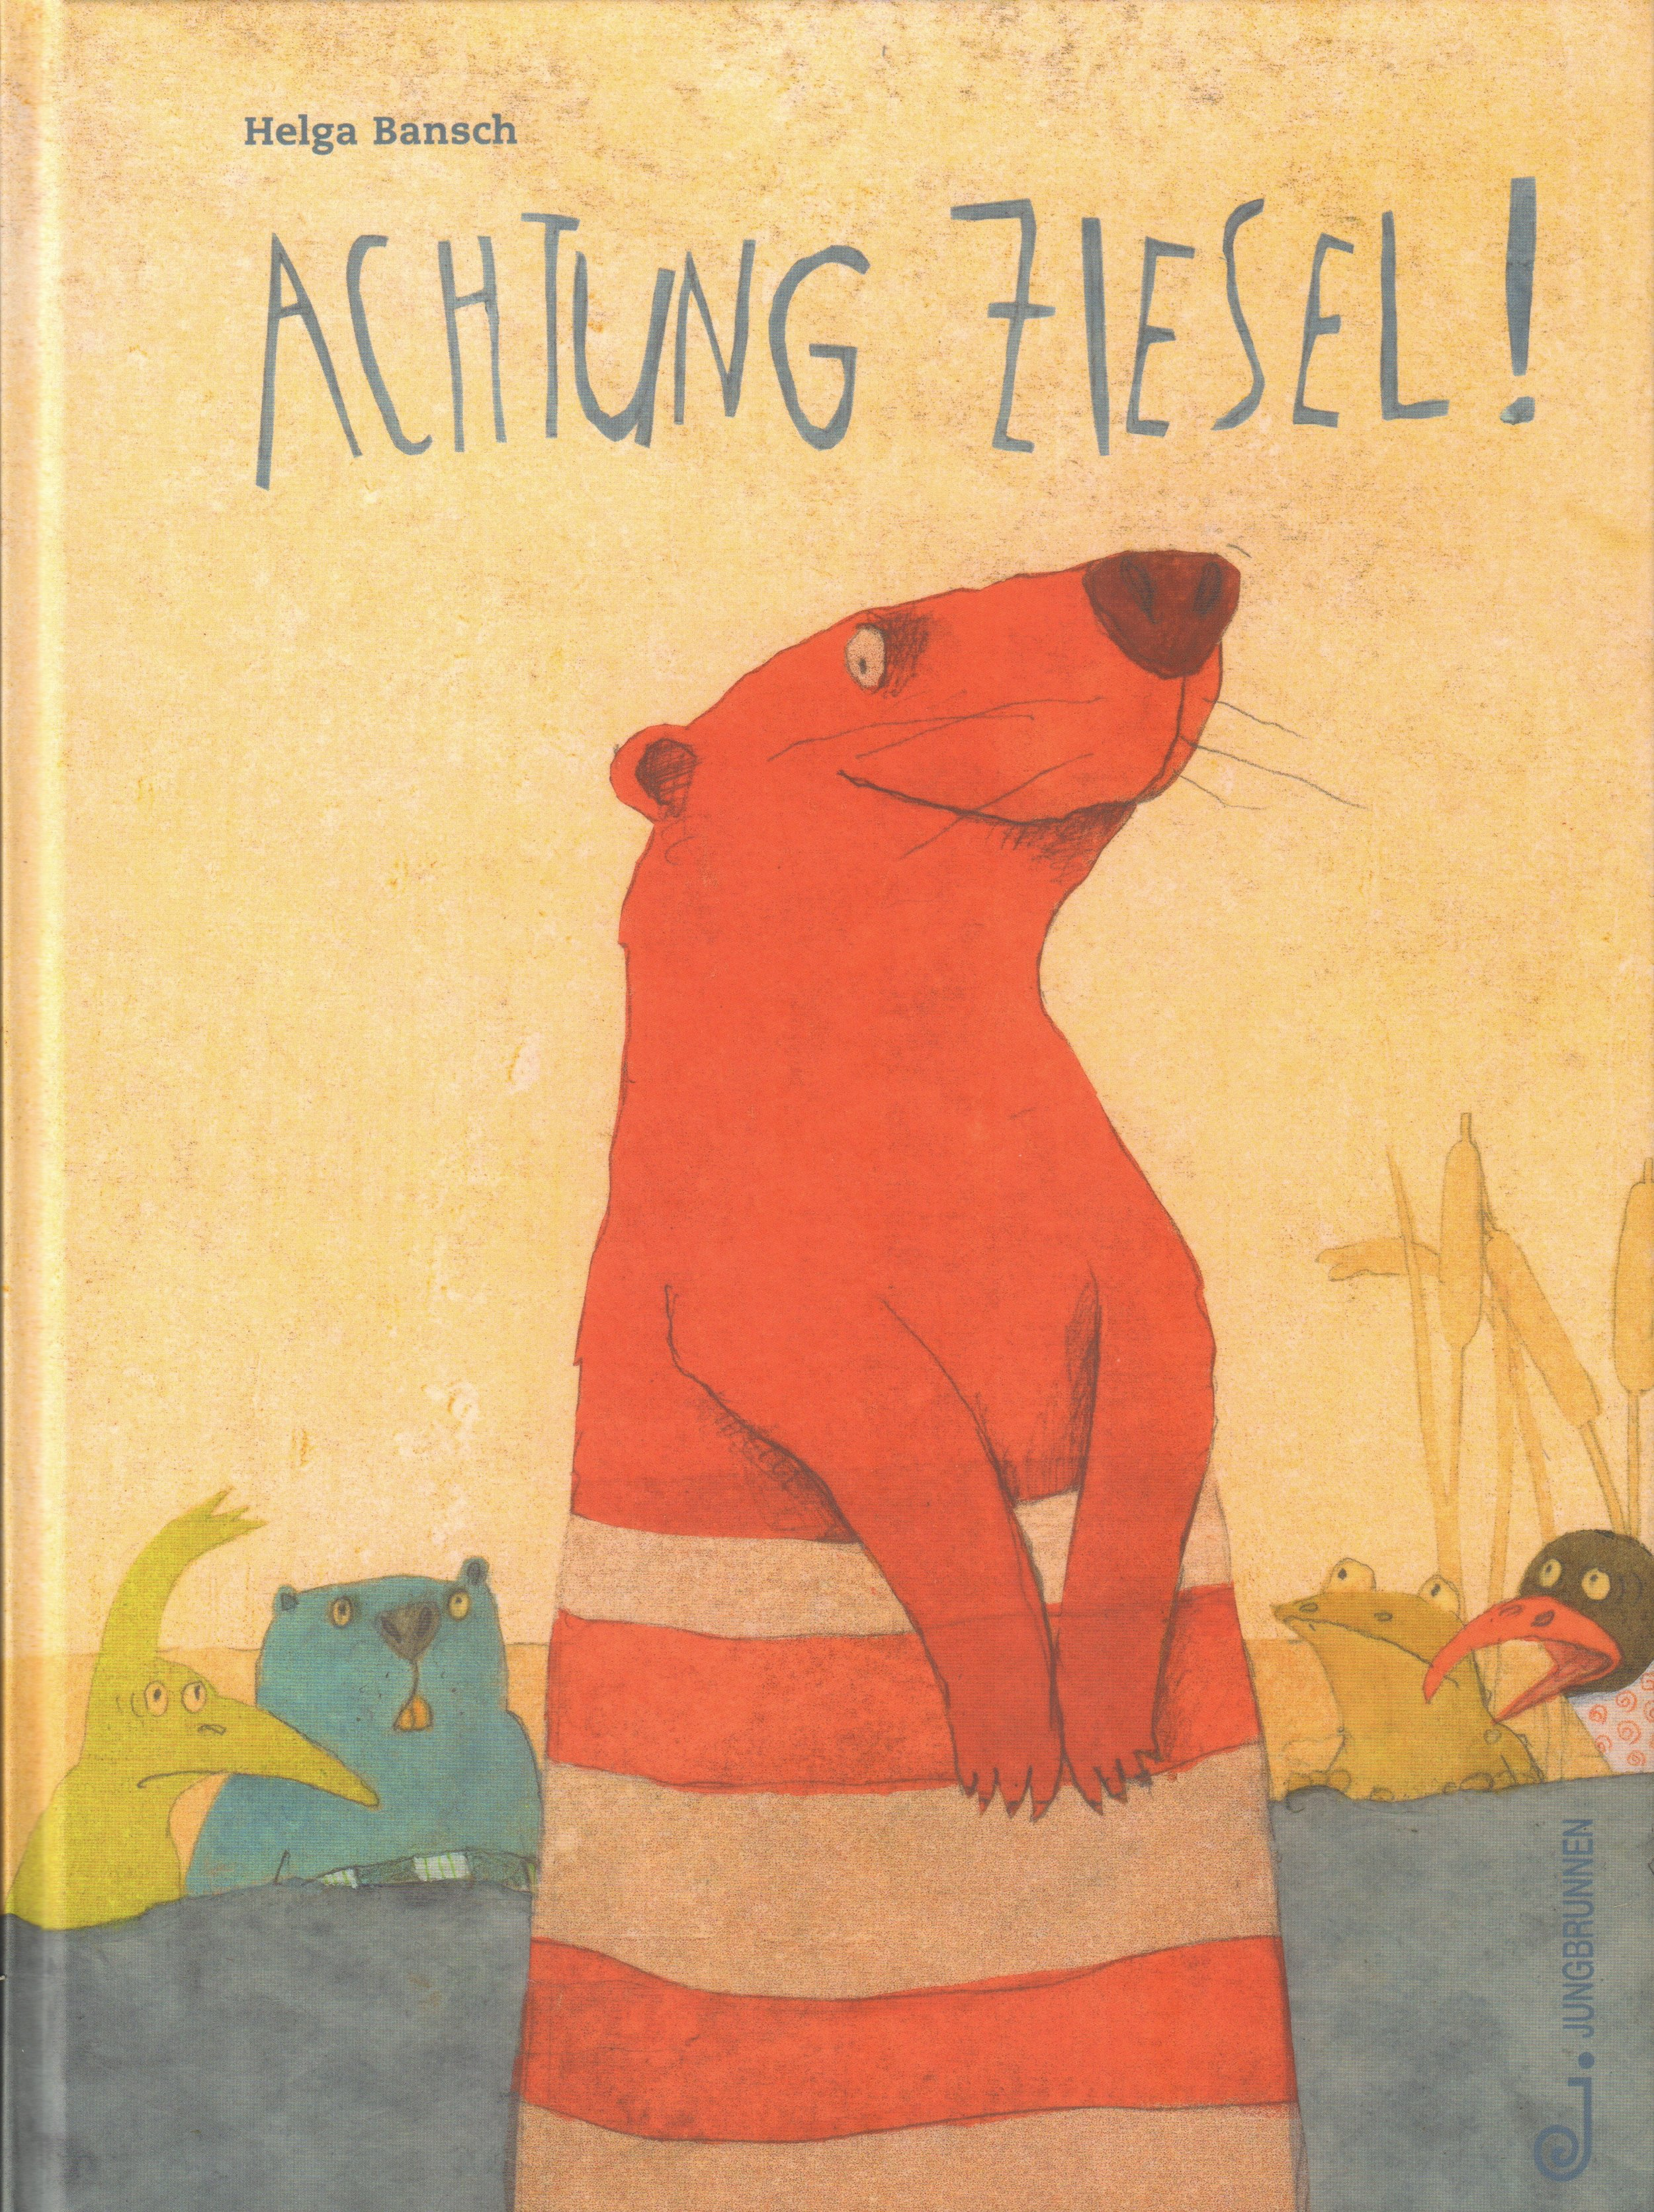 Cover from   Attention Weasel!  , Helga Bansch